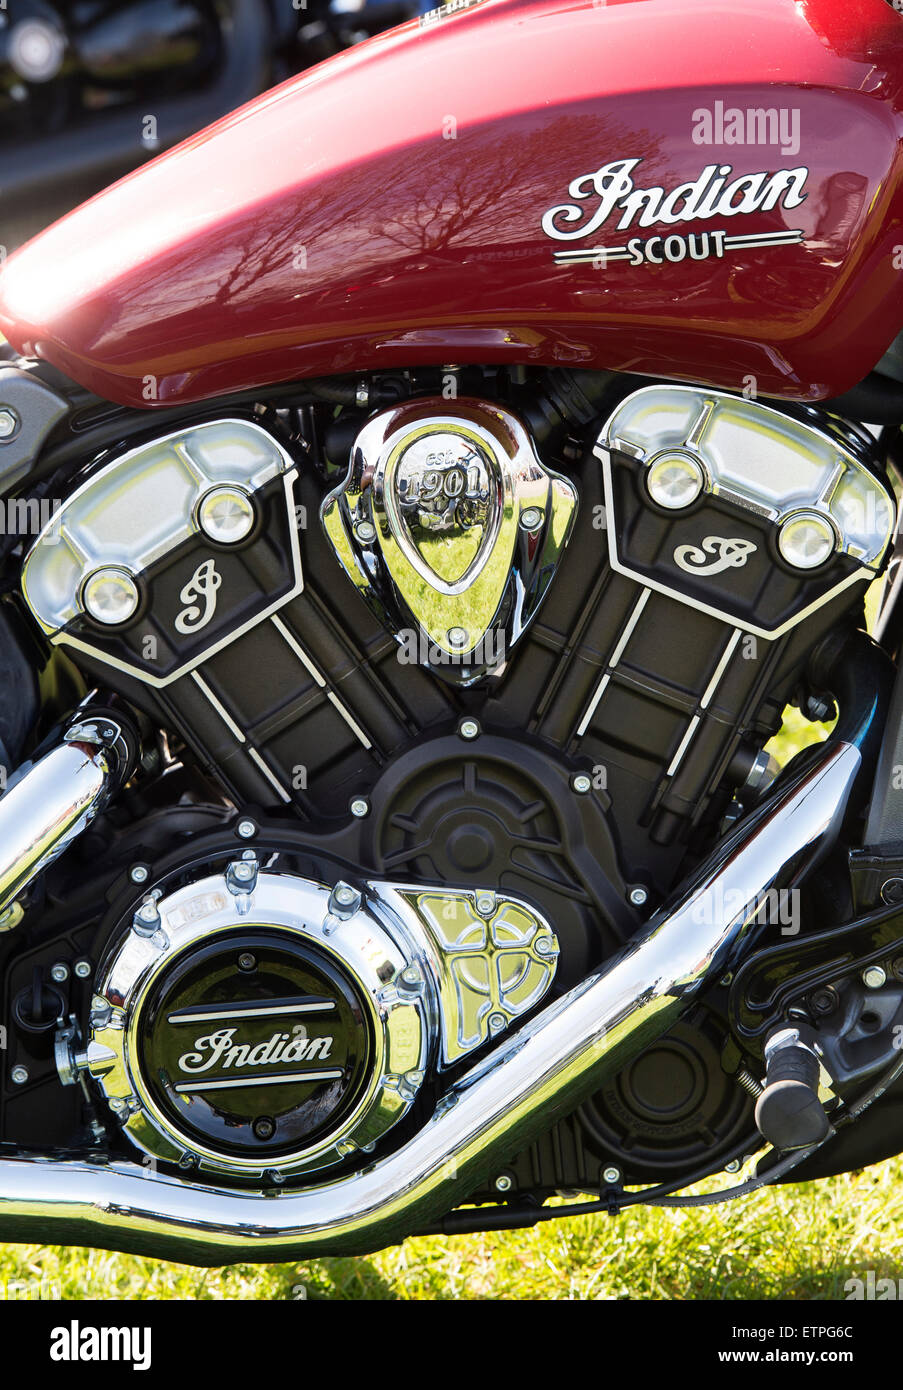 2015 Indian Scout motorcycle engine - Stock Image